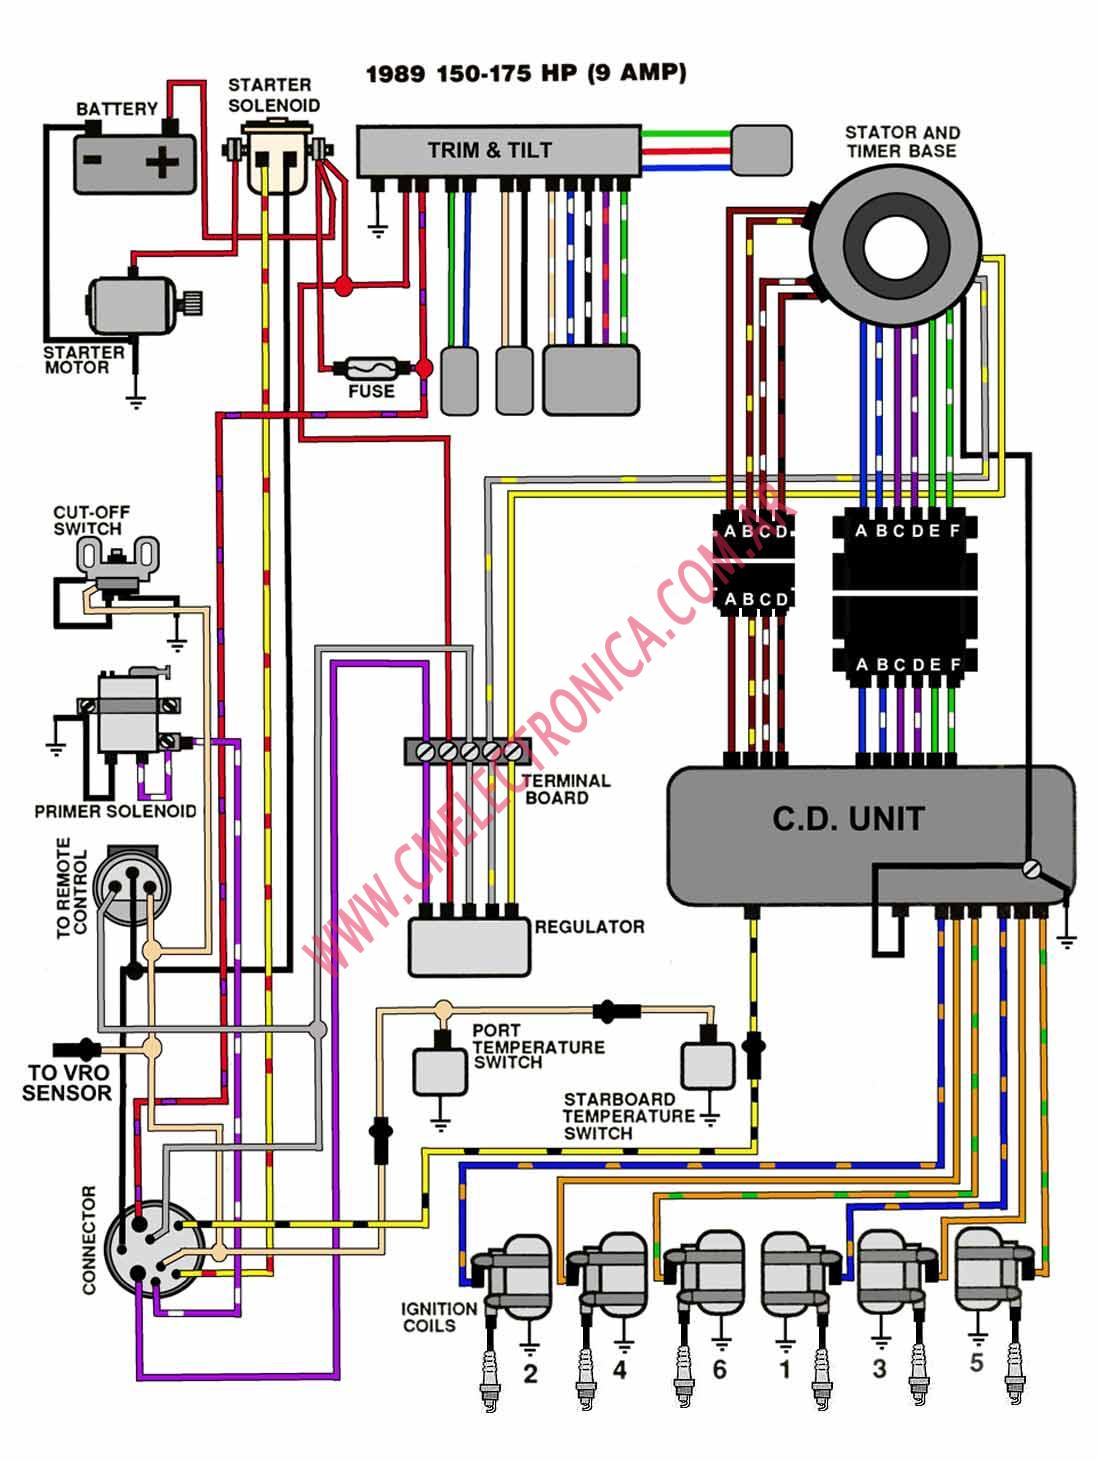 evinrude_johnson 1989_89_150_175_9 a 125 hp mercury outboard wiring diagram on 125 download wirning 85 Mercury Outboard Wiring Diagram at gsmportal.co